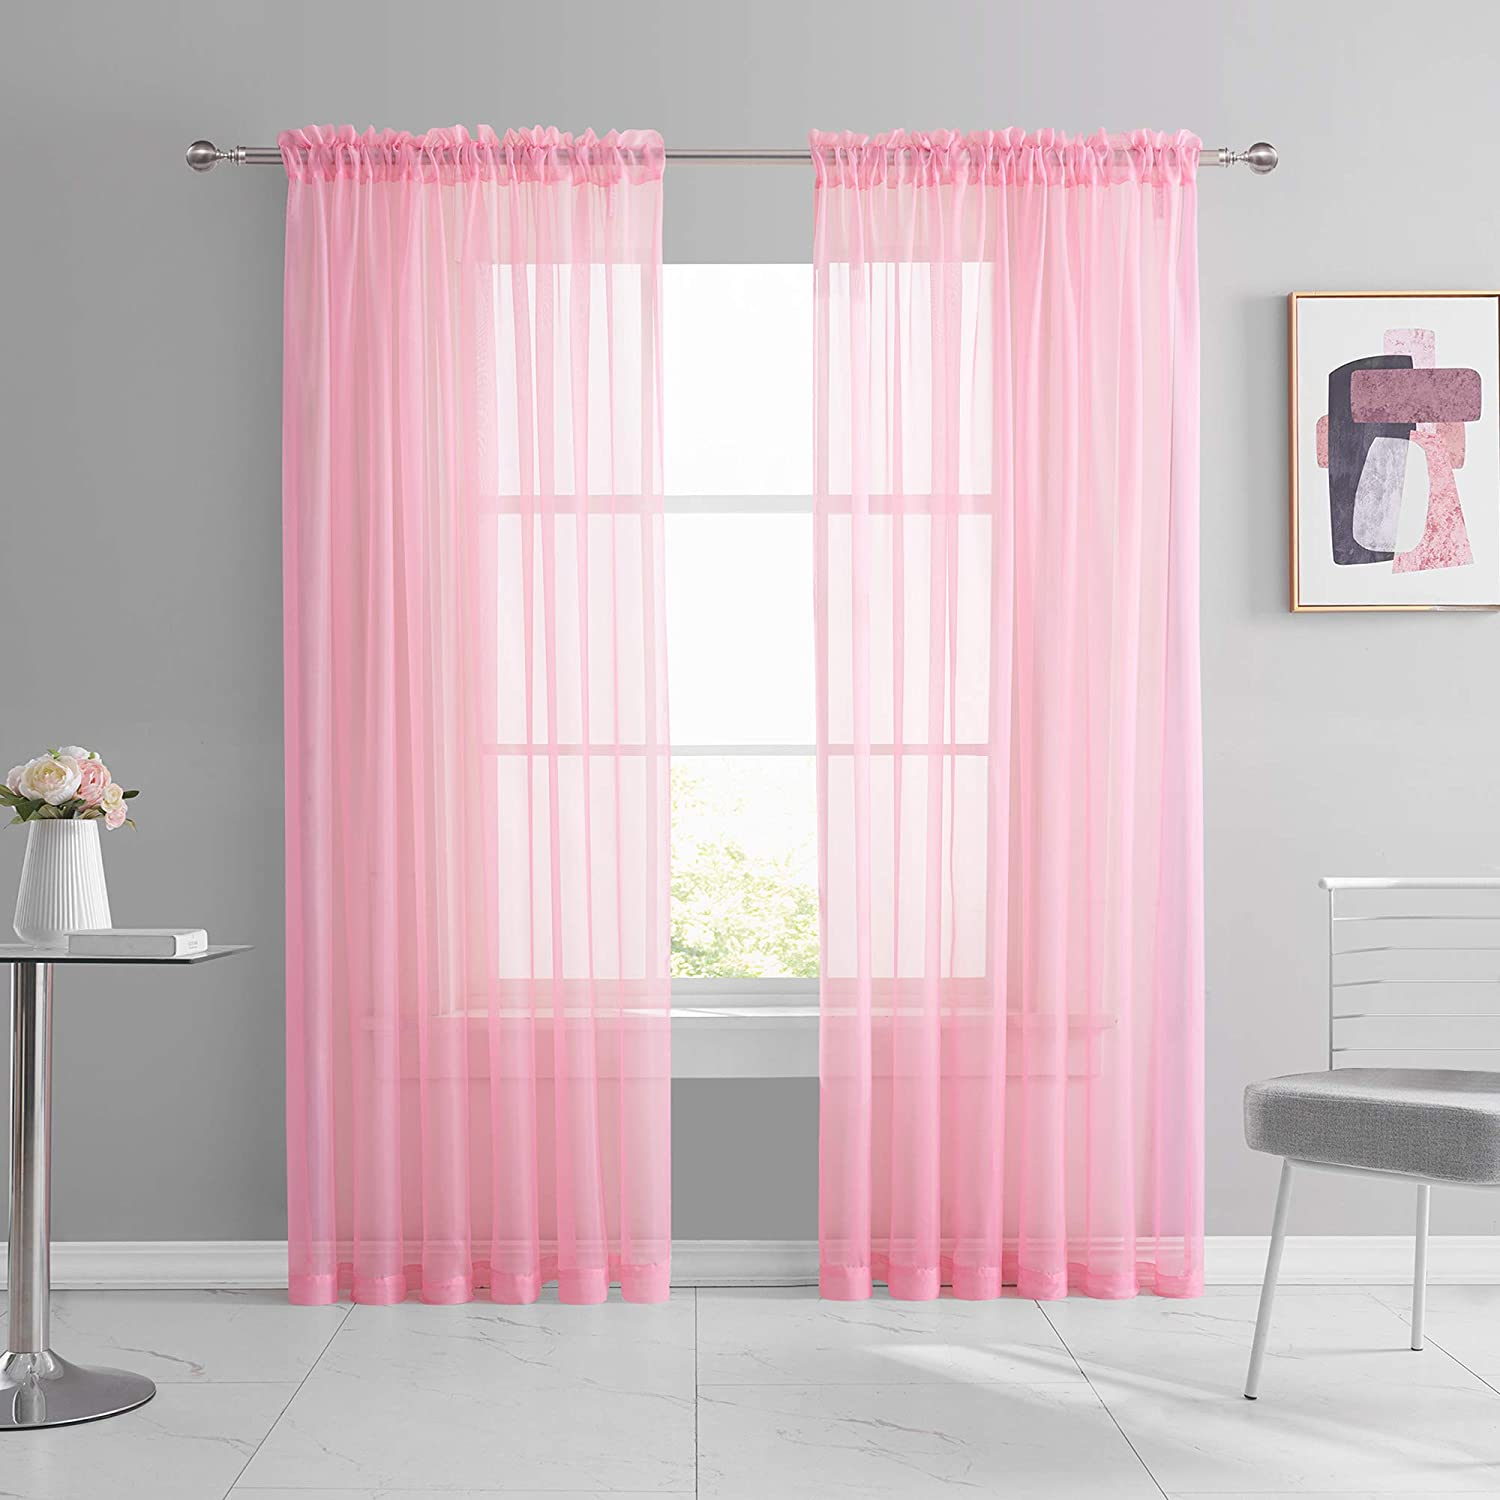 Amazon Com Keqiaosuocai 2 Pieces Pink Sheer Curtains 84 Inch Length For Girls Kid Room Nursery Bed Canopy Rod Pocket Sheer Voile Curtain Panels For Wedding Party Backdrop Bedroom Living Room 52wx84l Kitchen